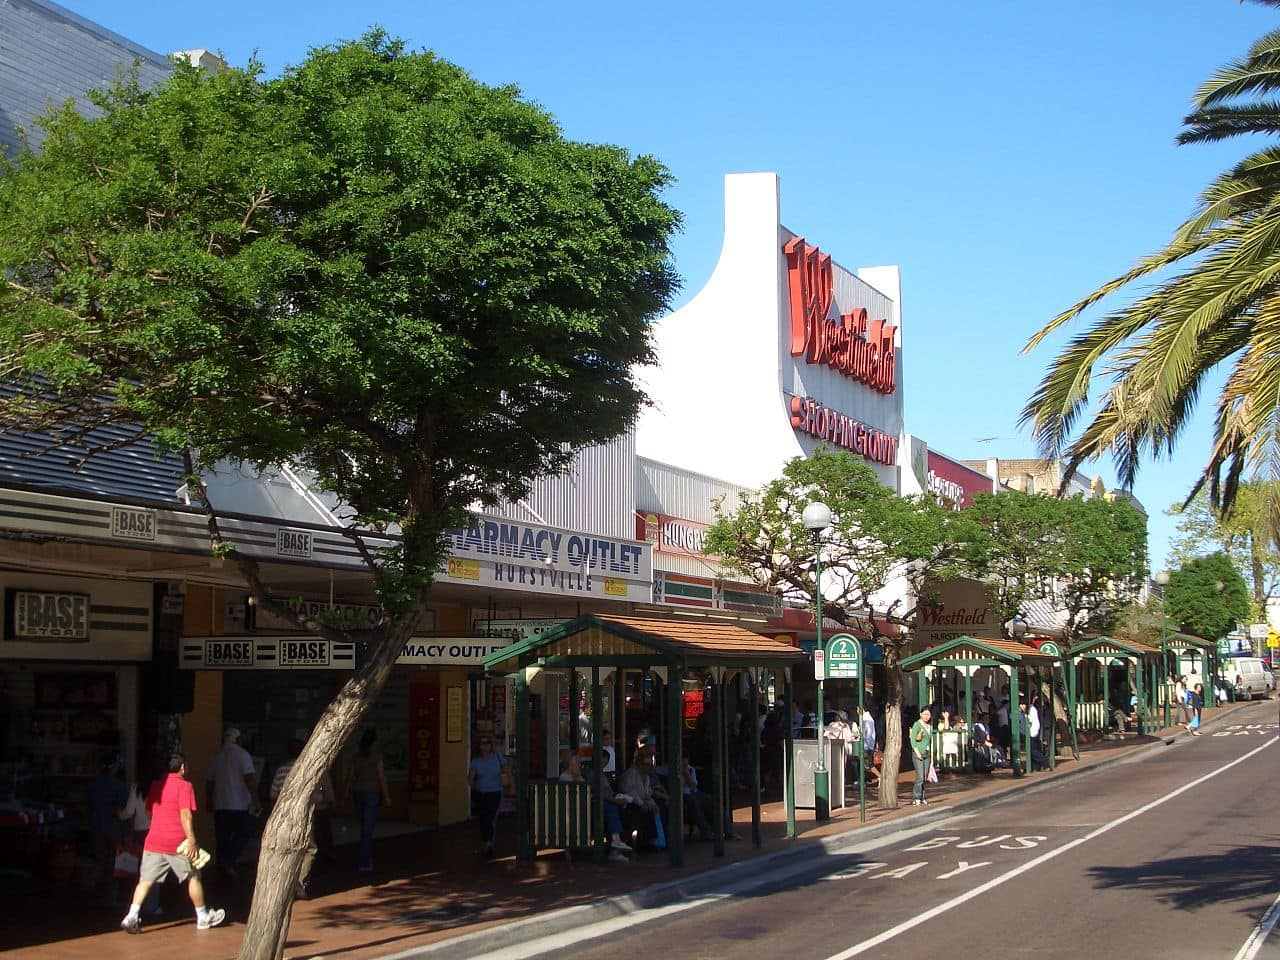 Forest Road, Hurstville